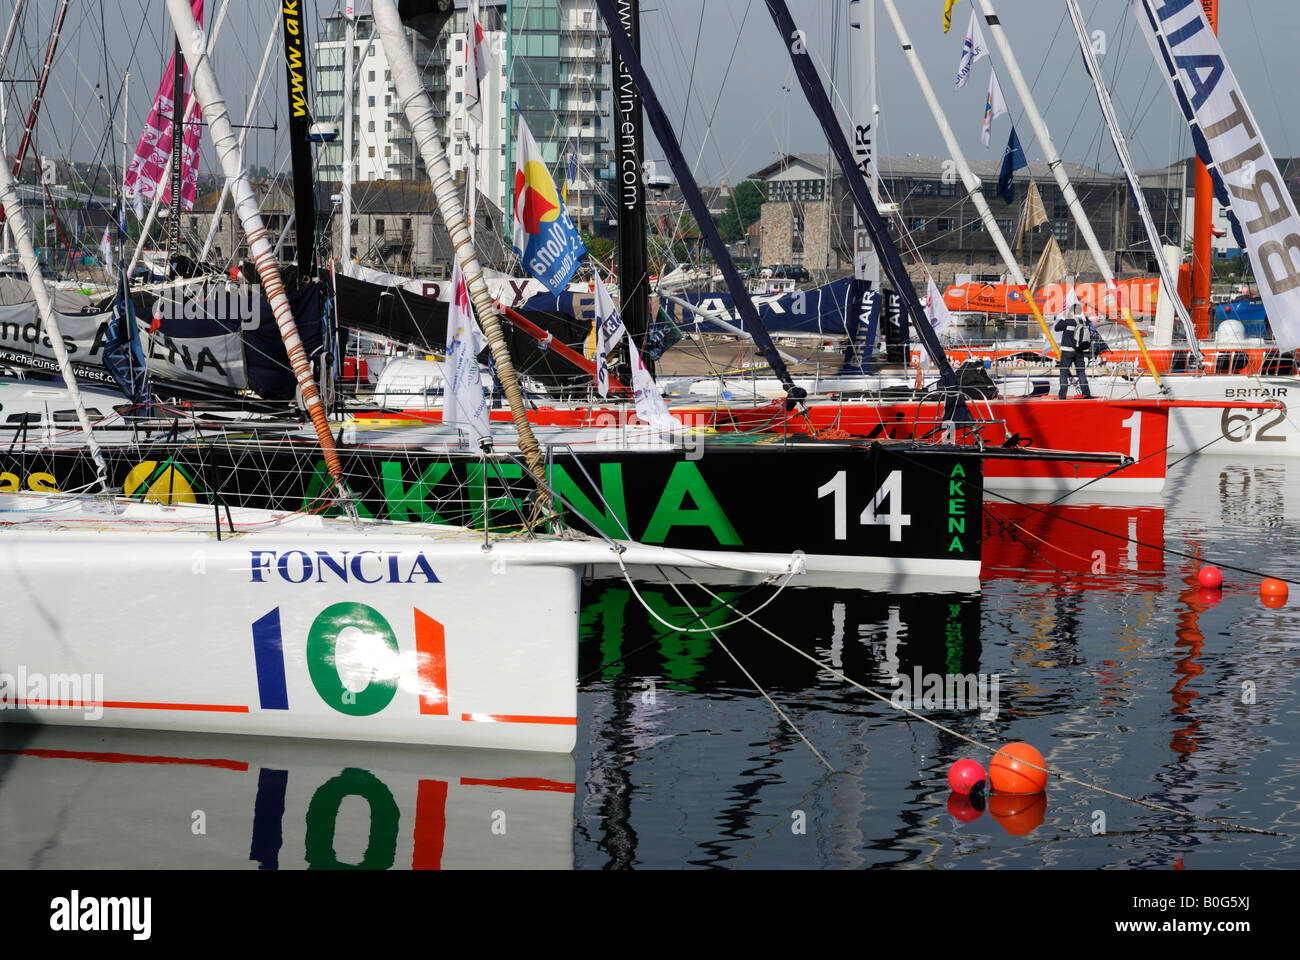 Racing yachts moored in Sutton Harbour, Plymouth, UK, before the 2008 Transat transatlantic race Stock Photo